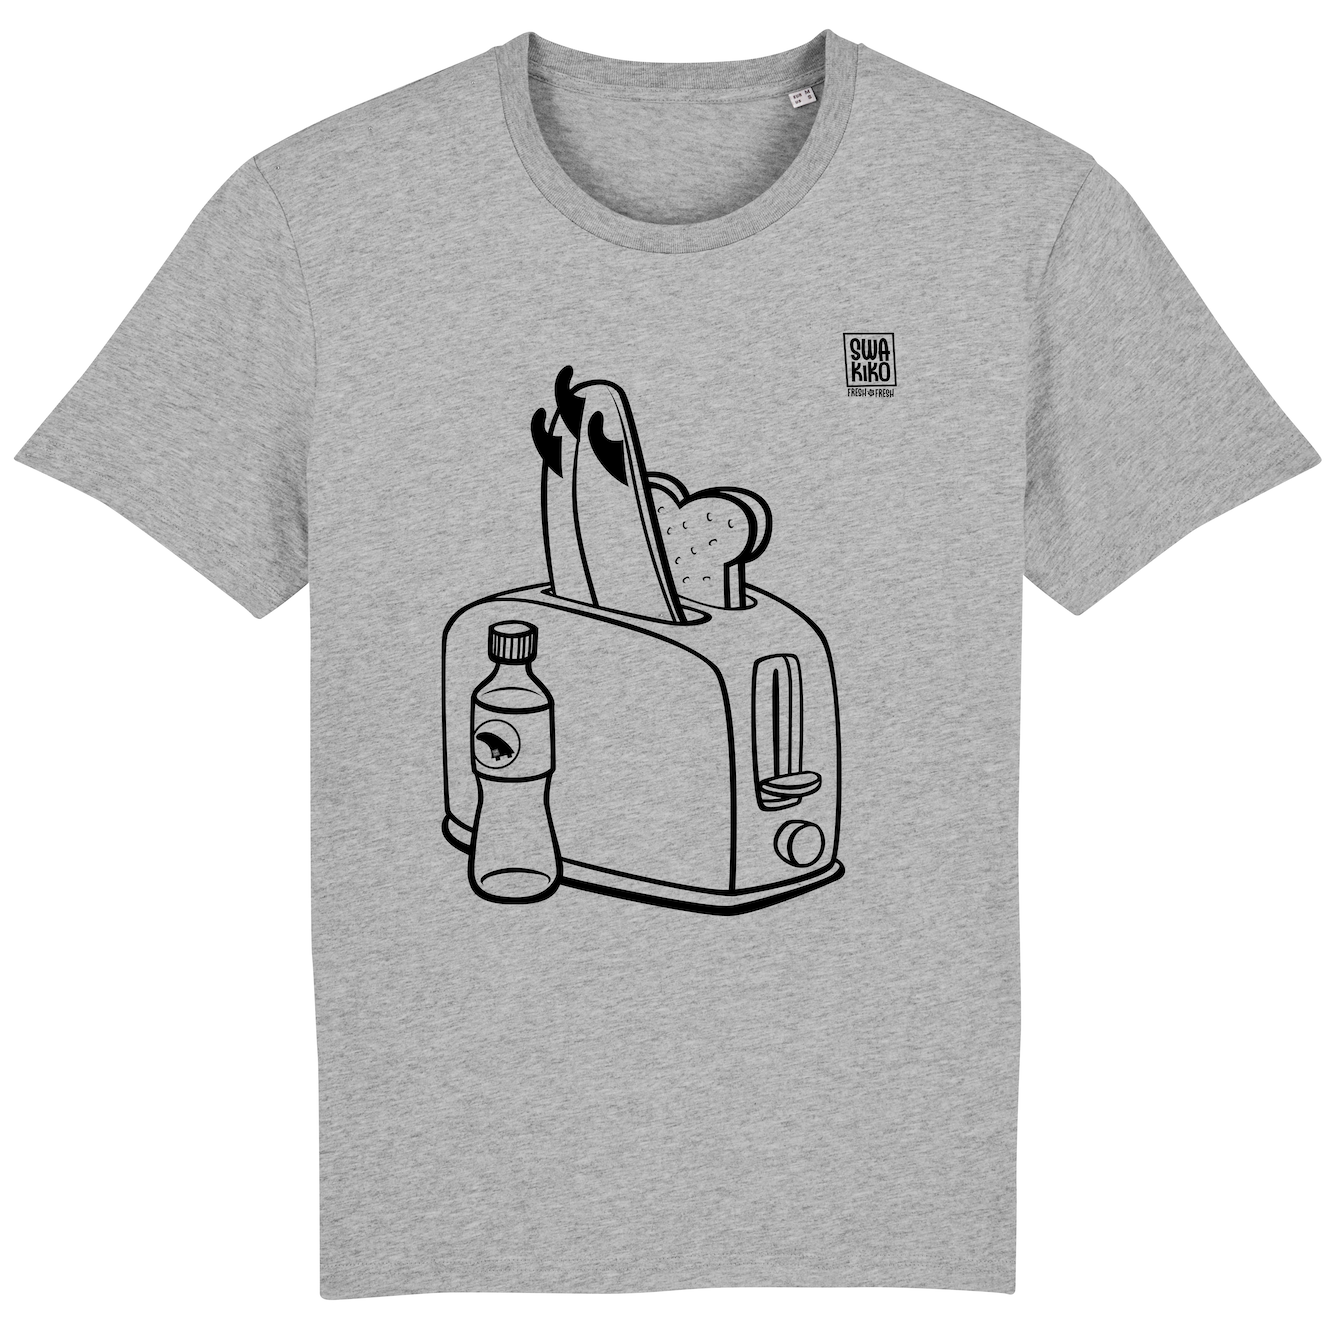 Surf t-shirt men grey, Toaster